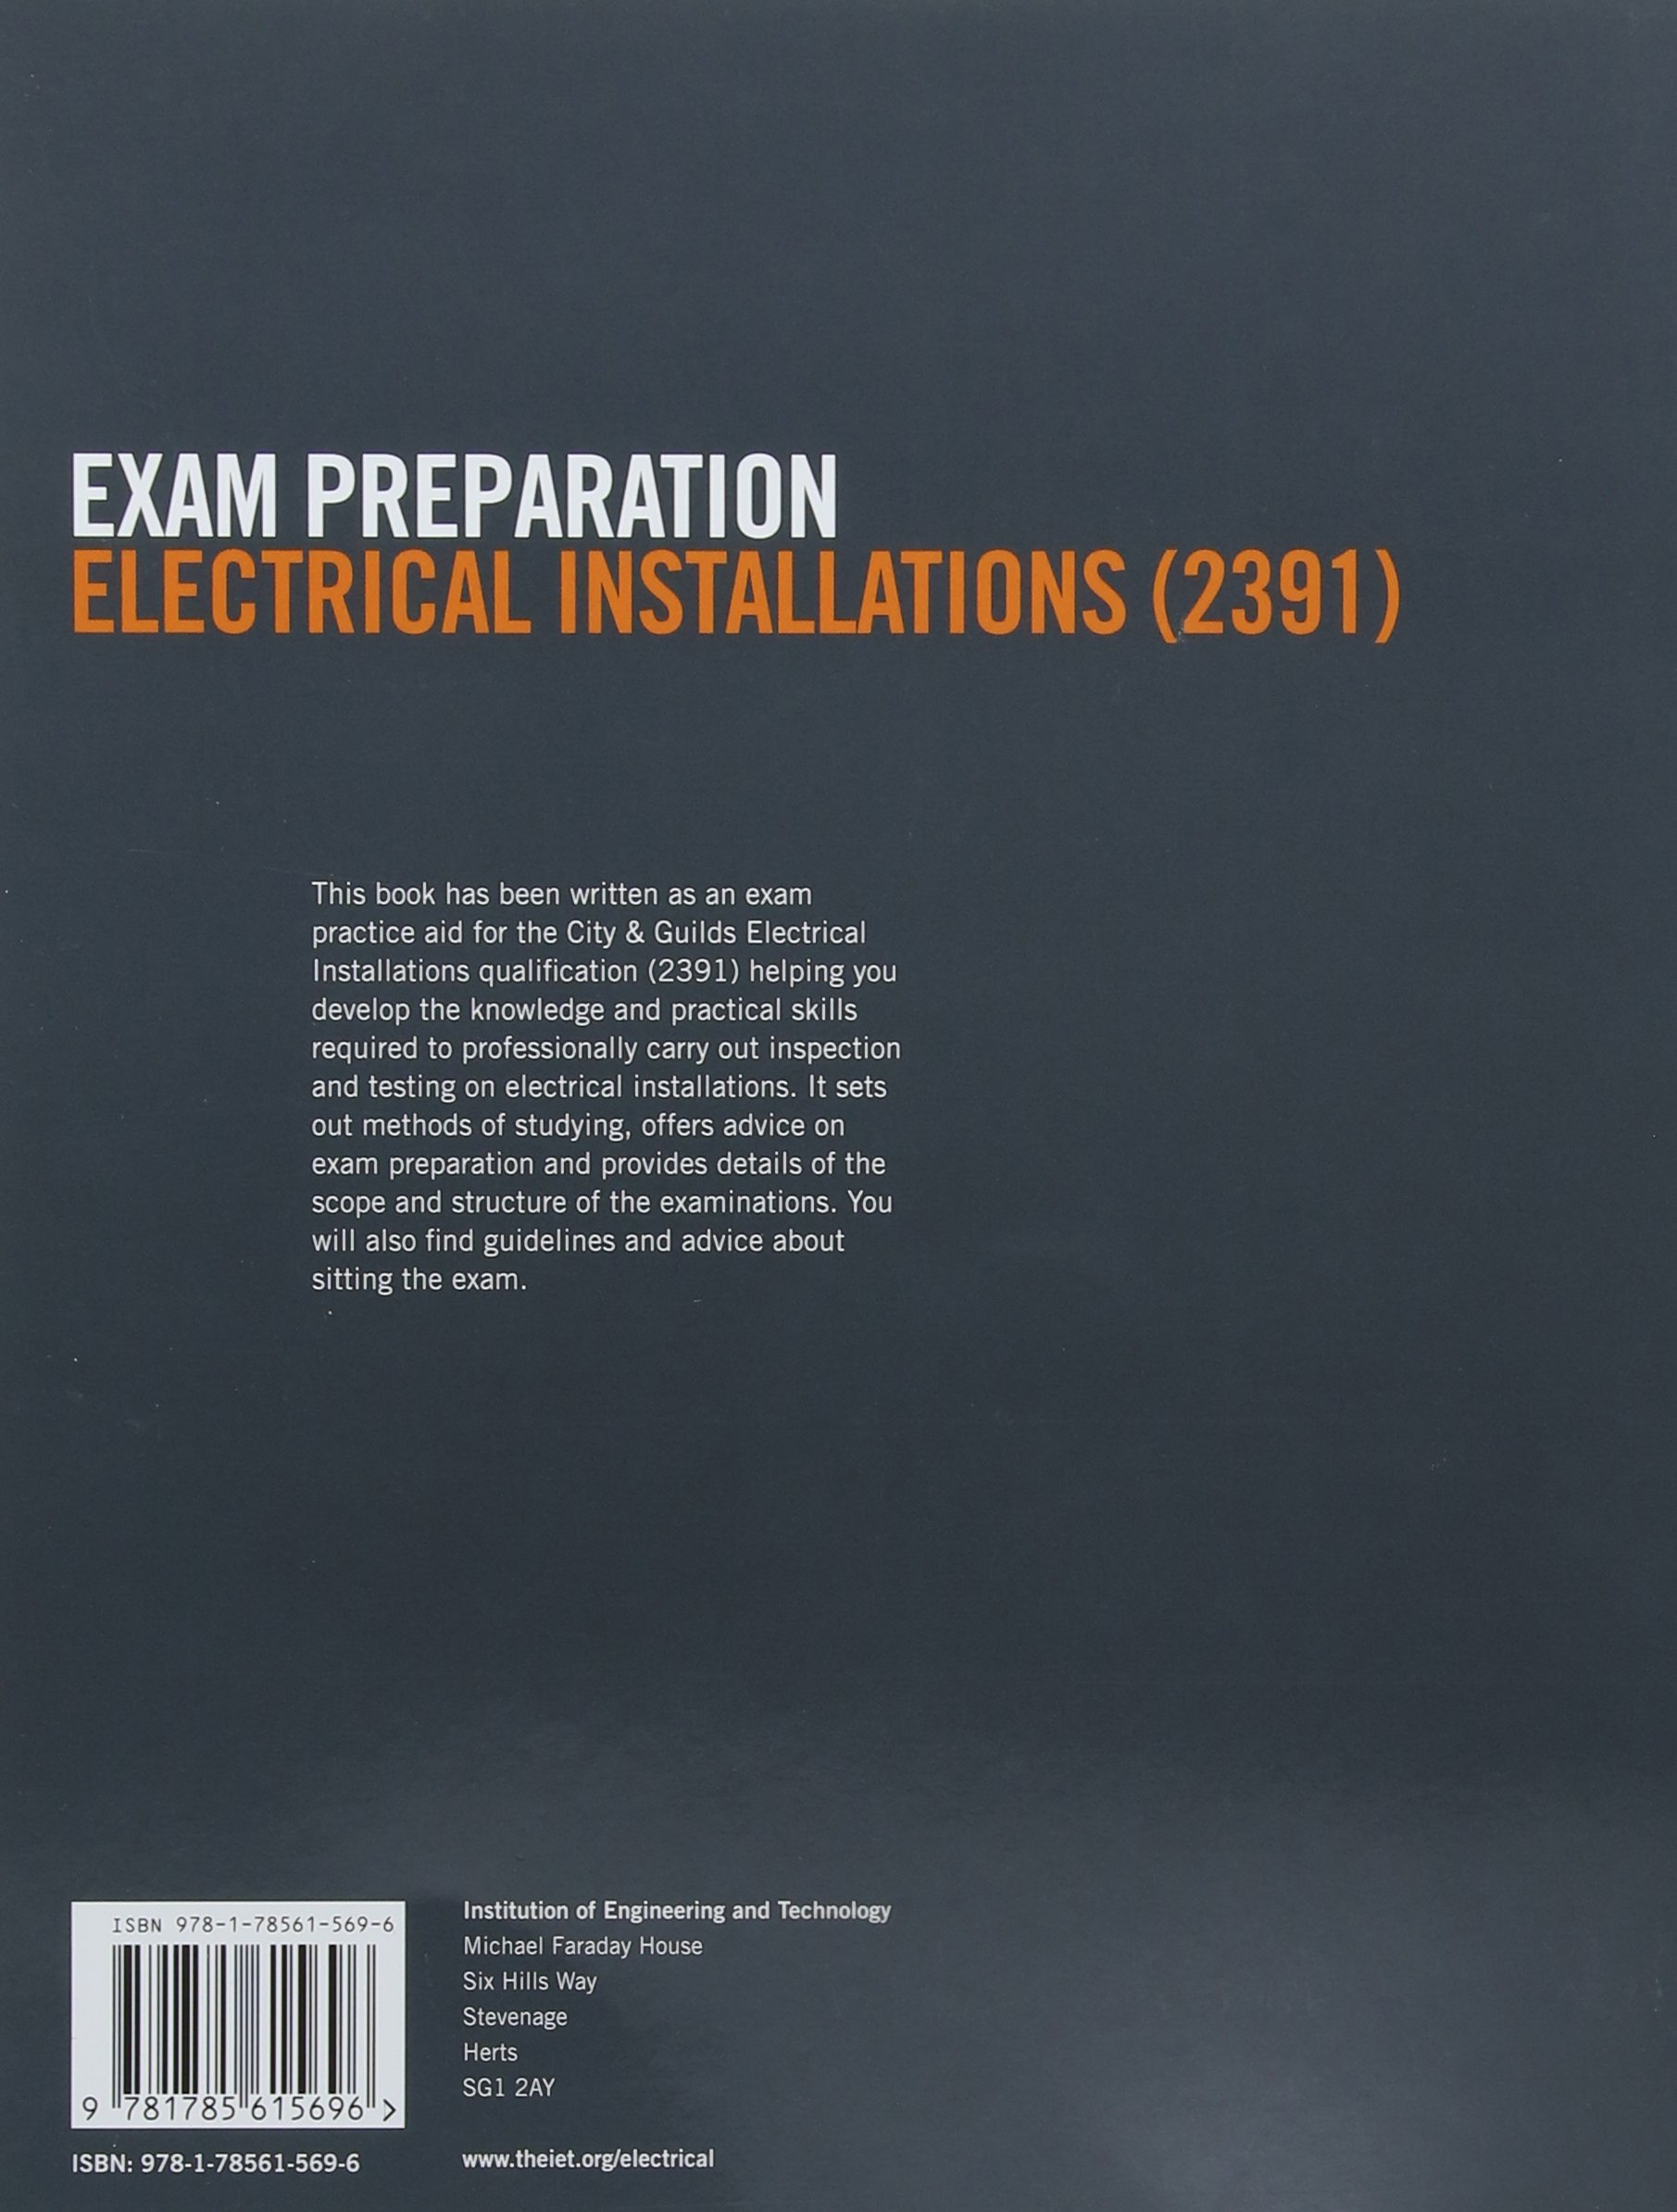 Exam Preparation 2391 Inspection Testing (Electrical Regulations):  Amazon.co.uk: The IET: 9781785615696: Books